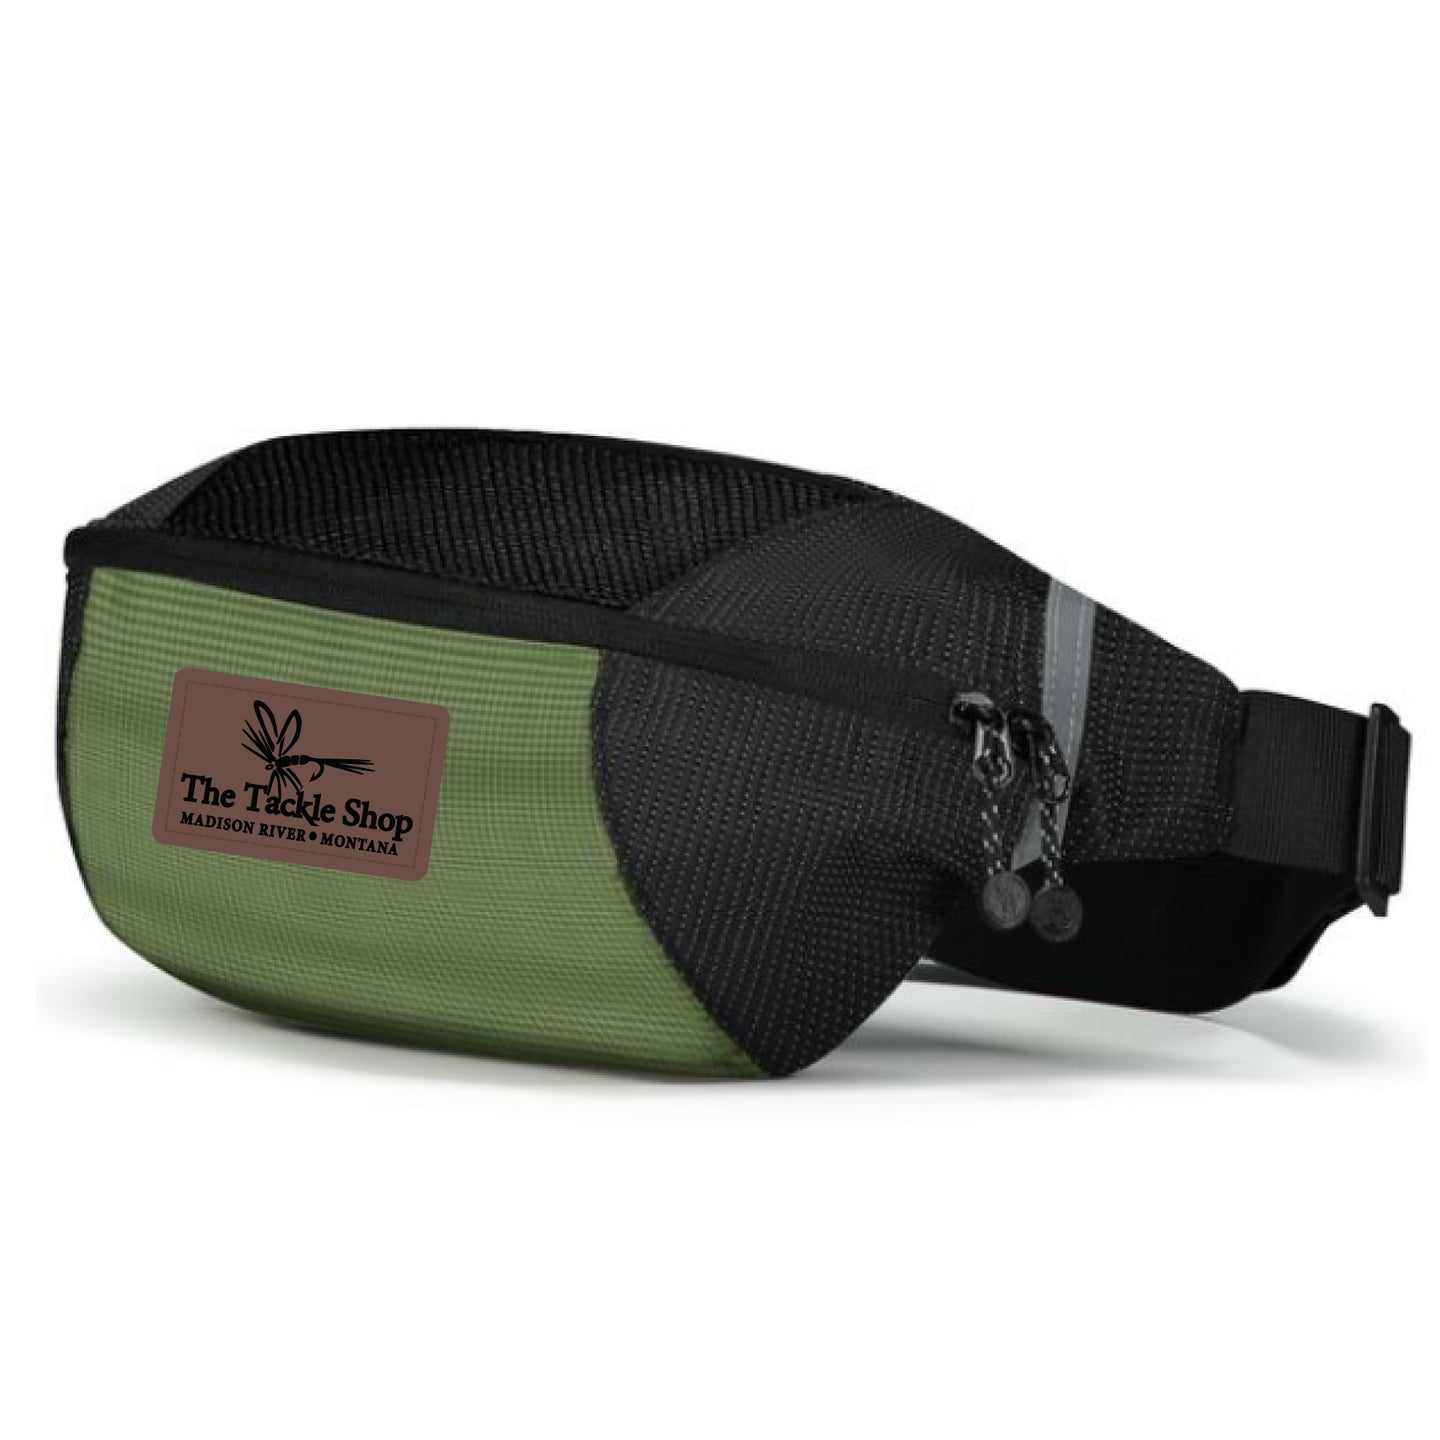 Ouray Expedition Waist Pack